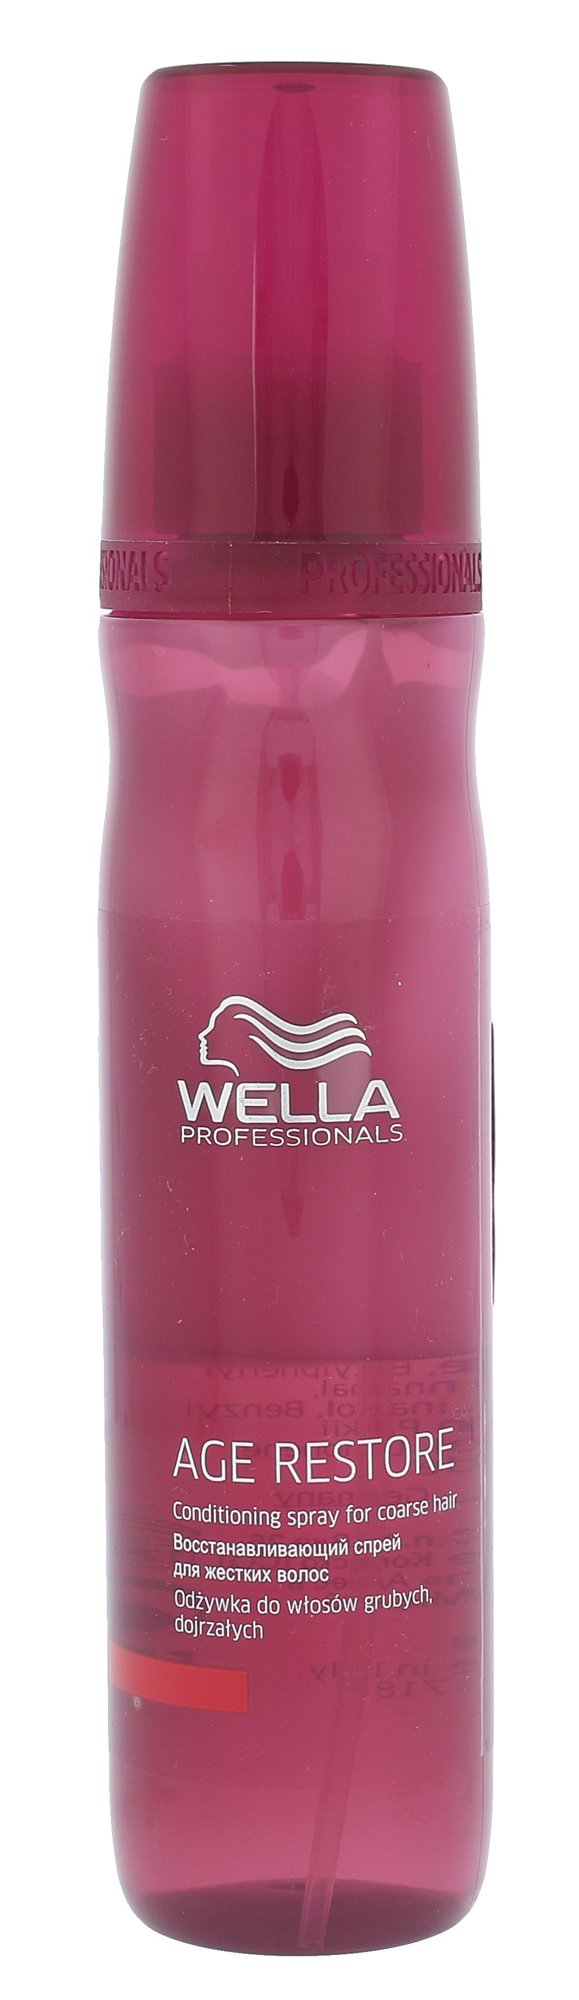 Wella Age Restore Cosmetic 150ml